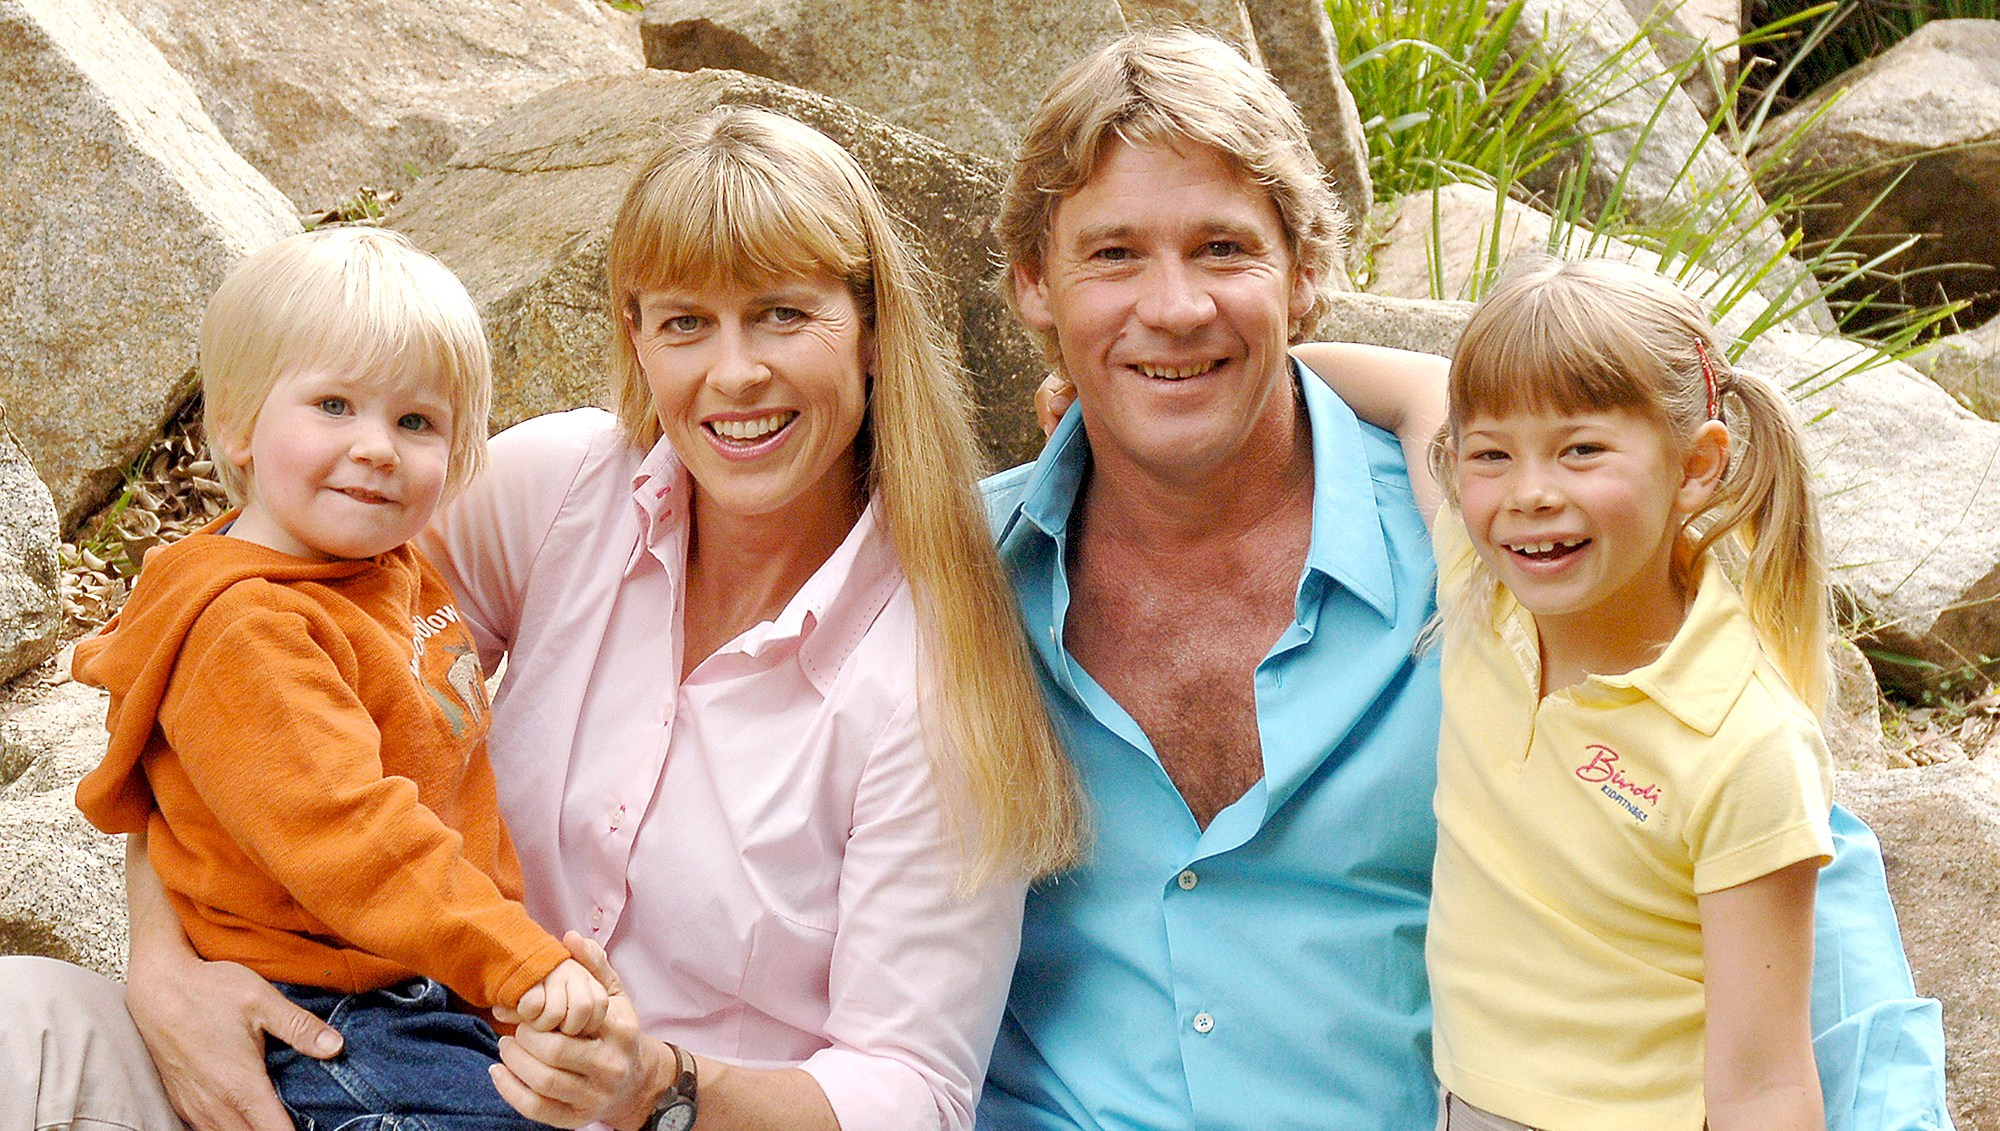 The-Irwin-Family-Pays-Emotional-Tribute-to-Steve-on-His-57th-Birthday